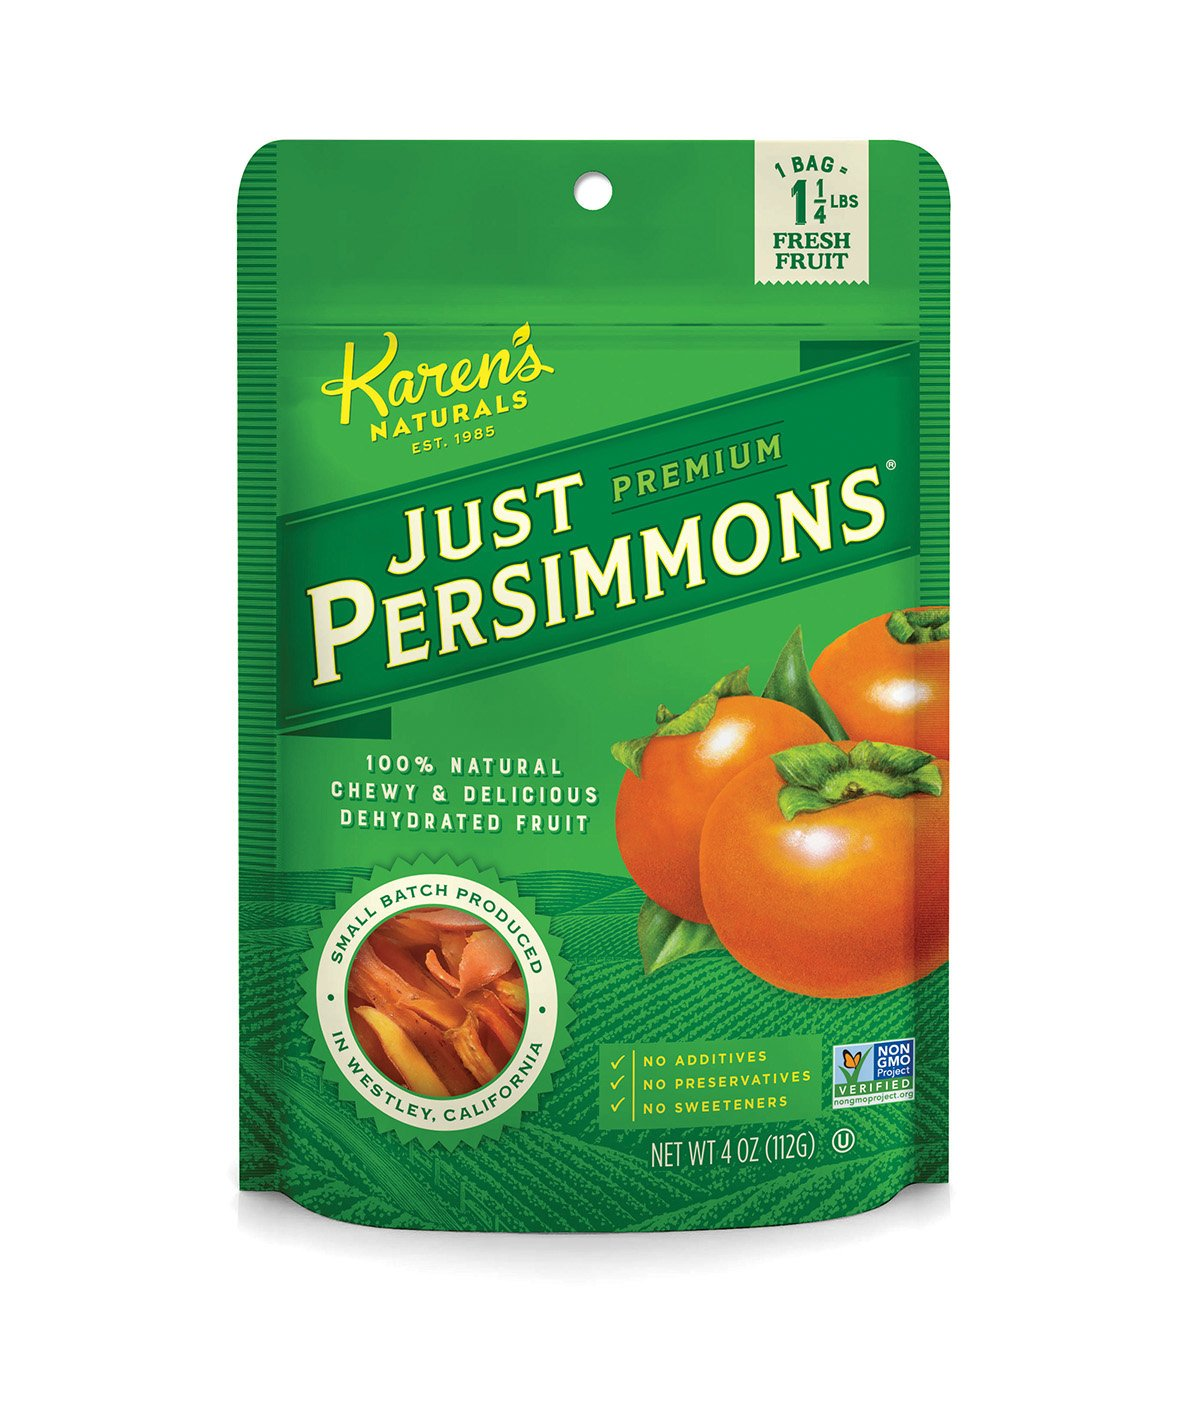 Karen's Naturals Just Tomatoes, Just Persimmons 4 Ounce Pouch (Packaging May Vary)